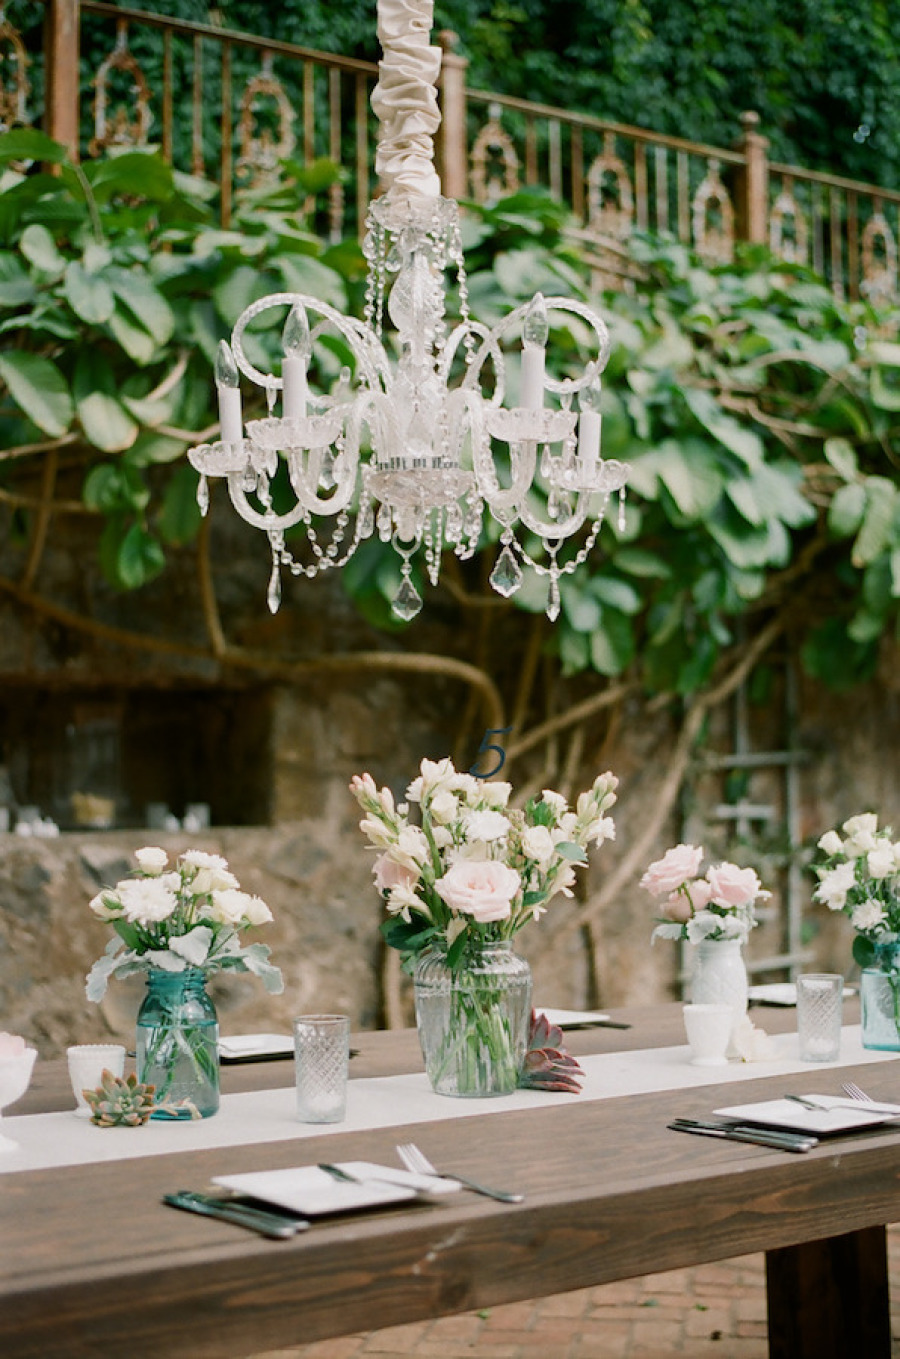 Wedding chandelier decorations wedding trends wedding chandelier decorationsoutdoor wedding chandelier decorationswedding decoration ideaswedding trend 2015 audiocablefo